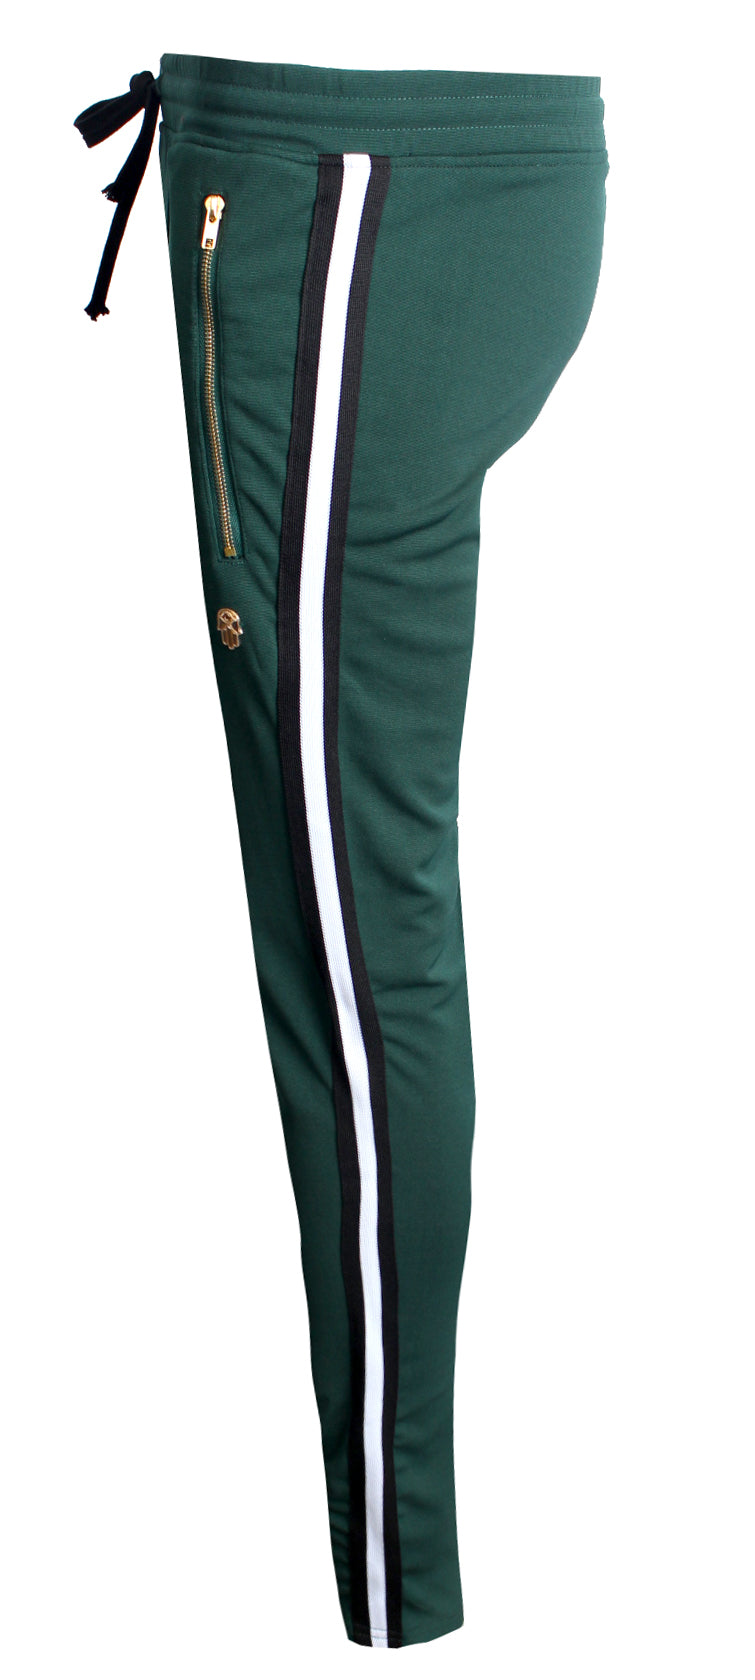 Men's Track Pants with Side Stripes Details-Green